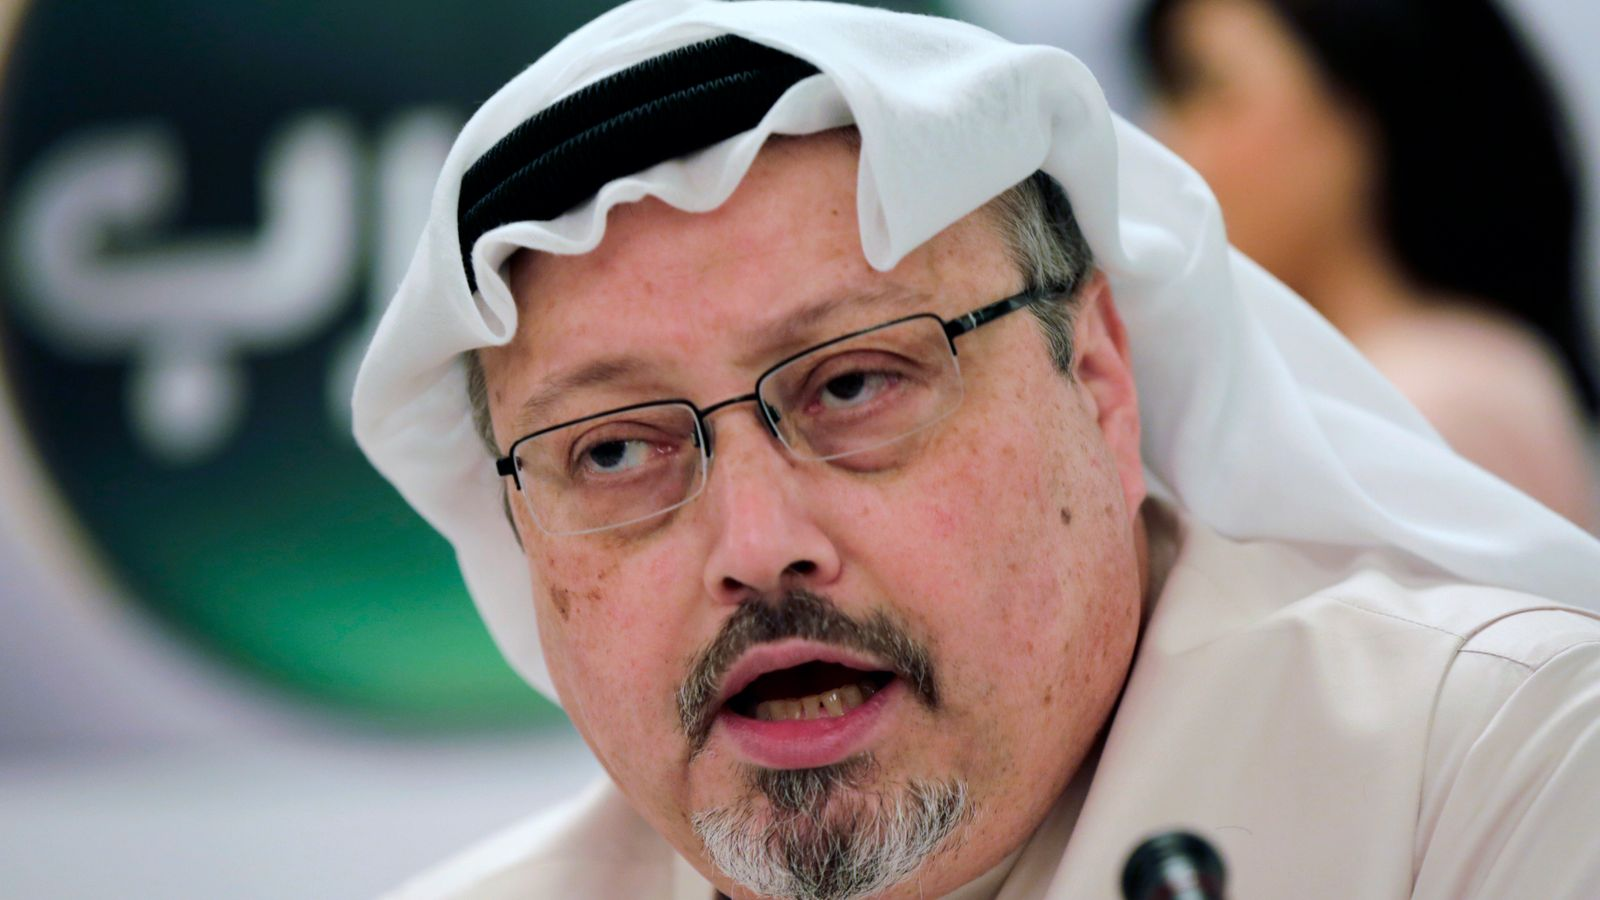 Jamal Khashoggi: US report anticipated guilty Saudi Crown Prince Mohammed bin Salman for journalist's homicide